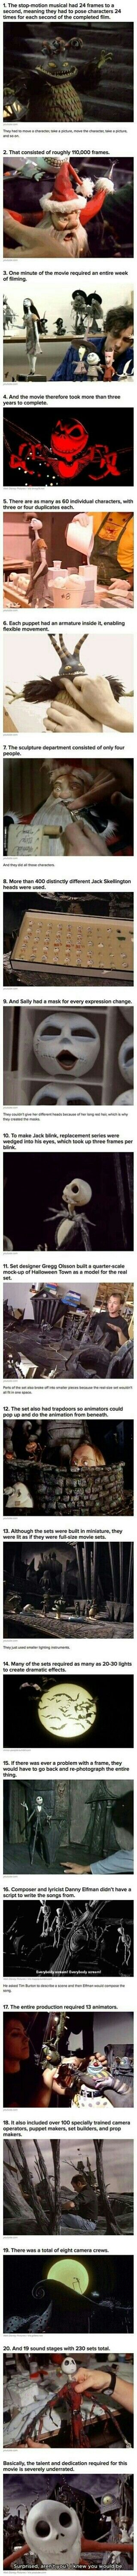 The making of the Nightmare Before Christmas